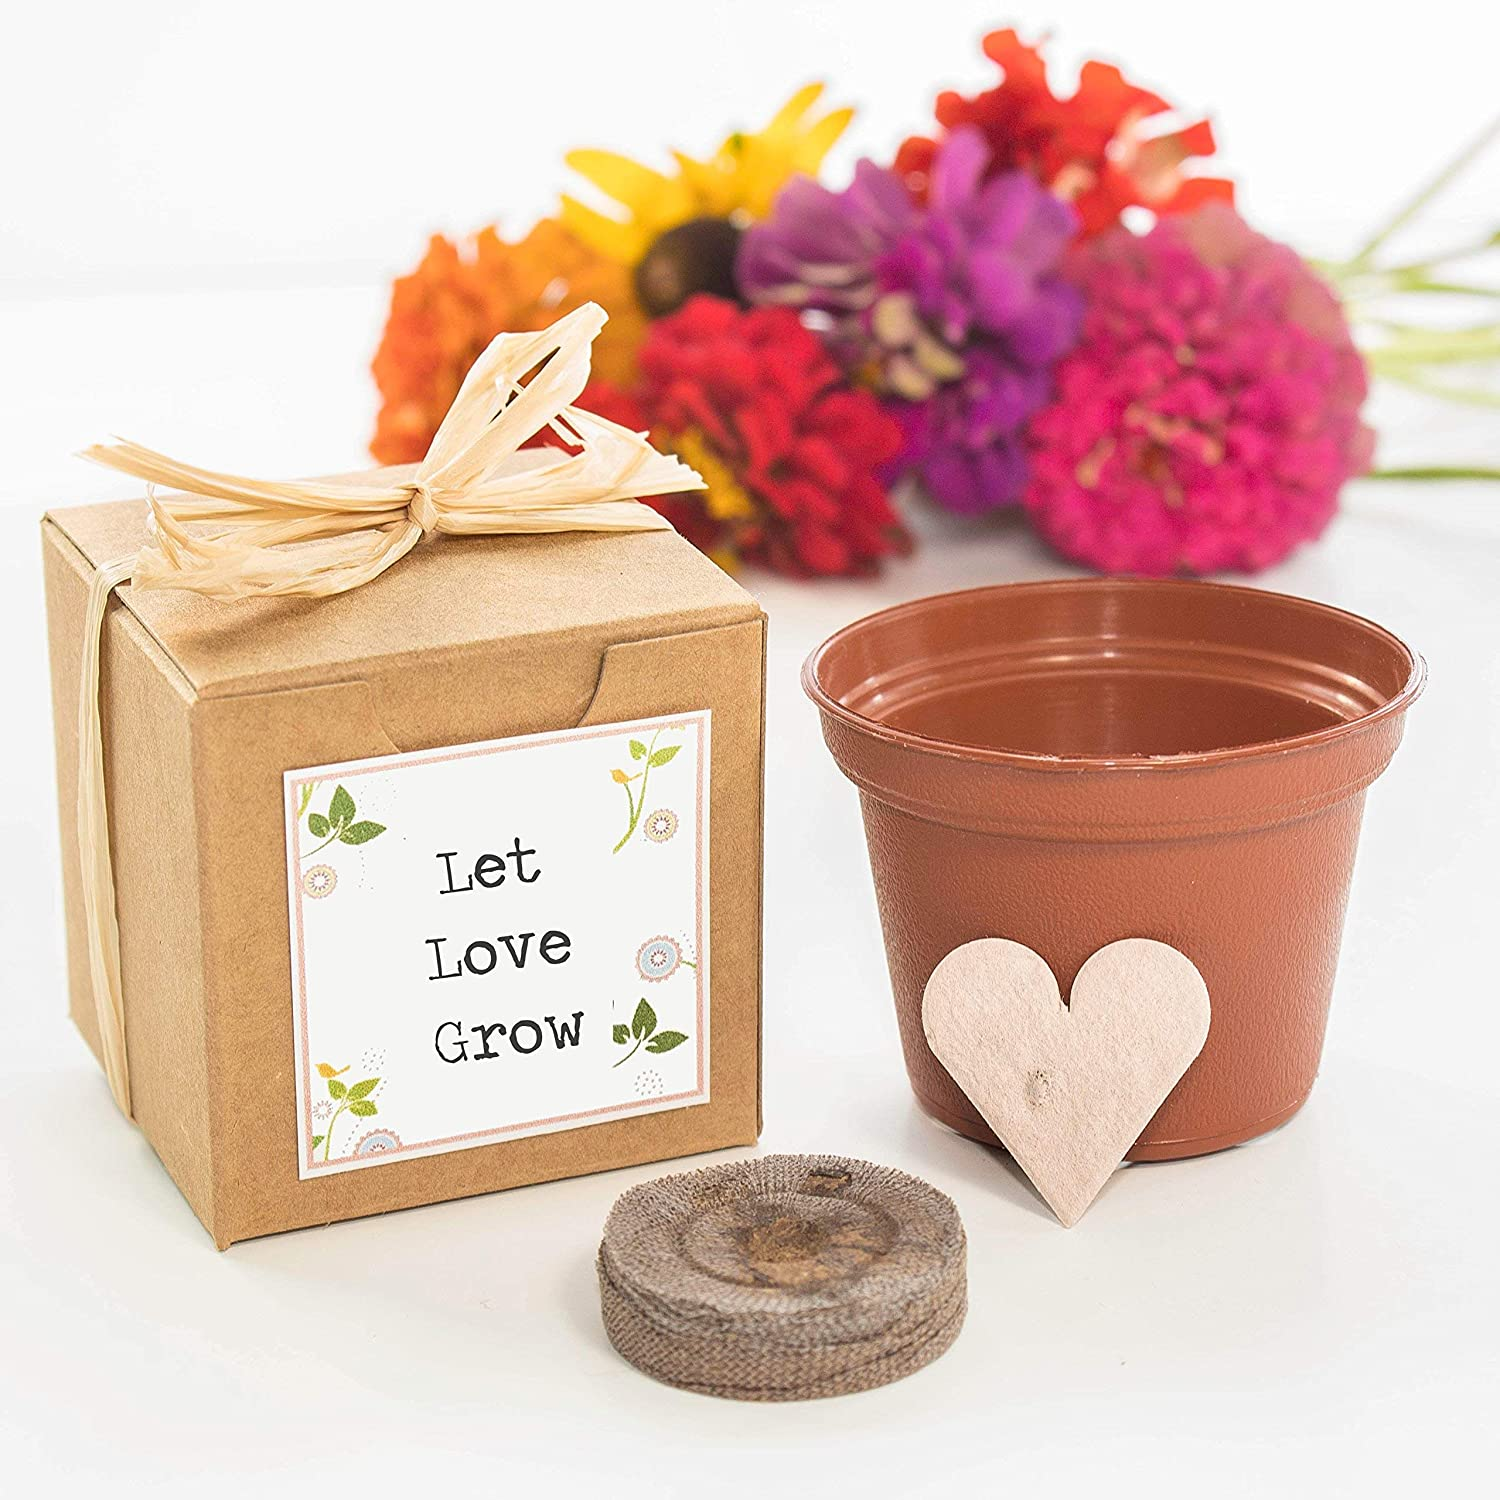 Plantable Seeds Paper Confetti Let Love Grow Flower Seeds Wedding Favour Gift